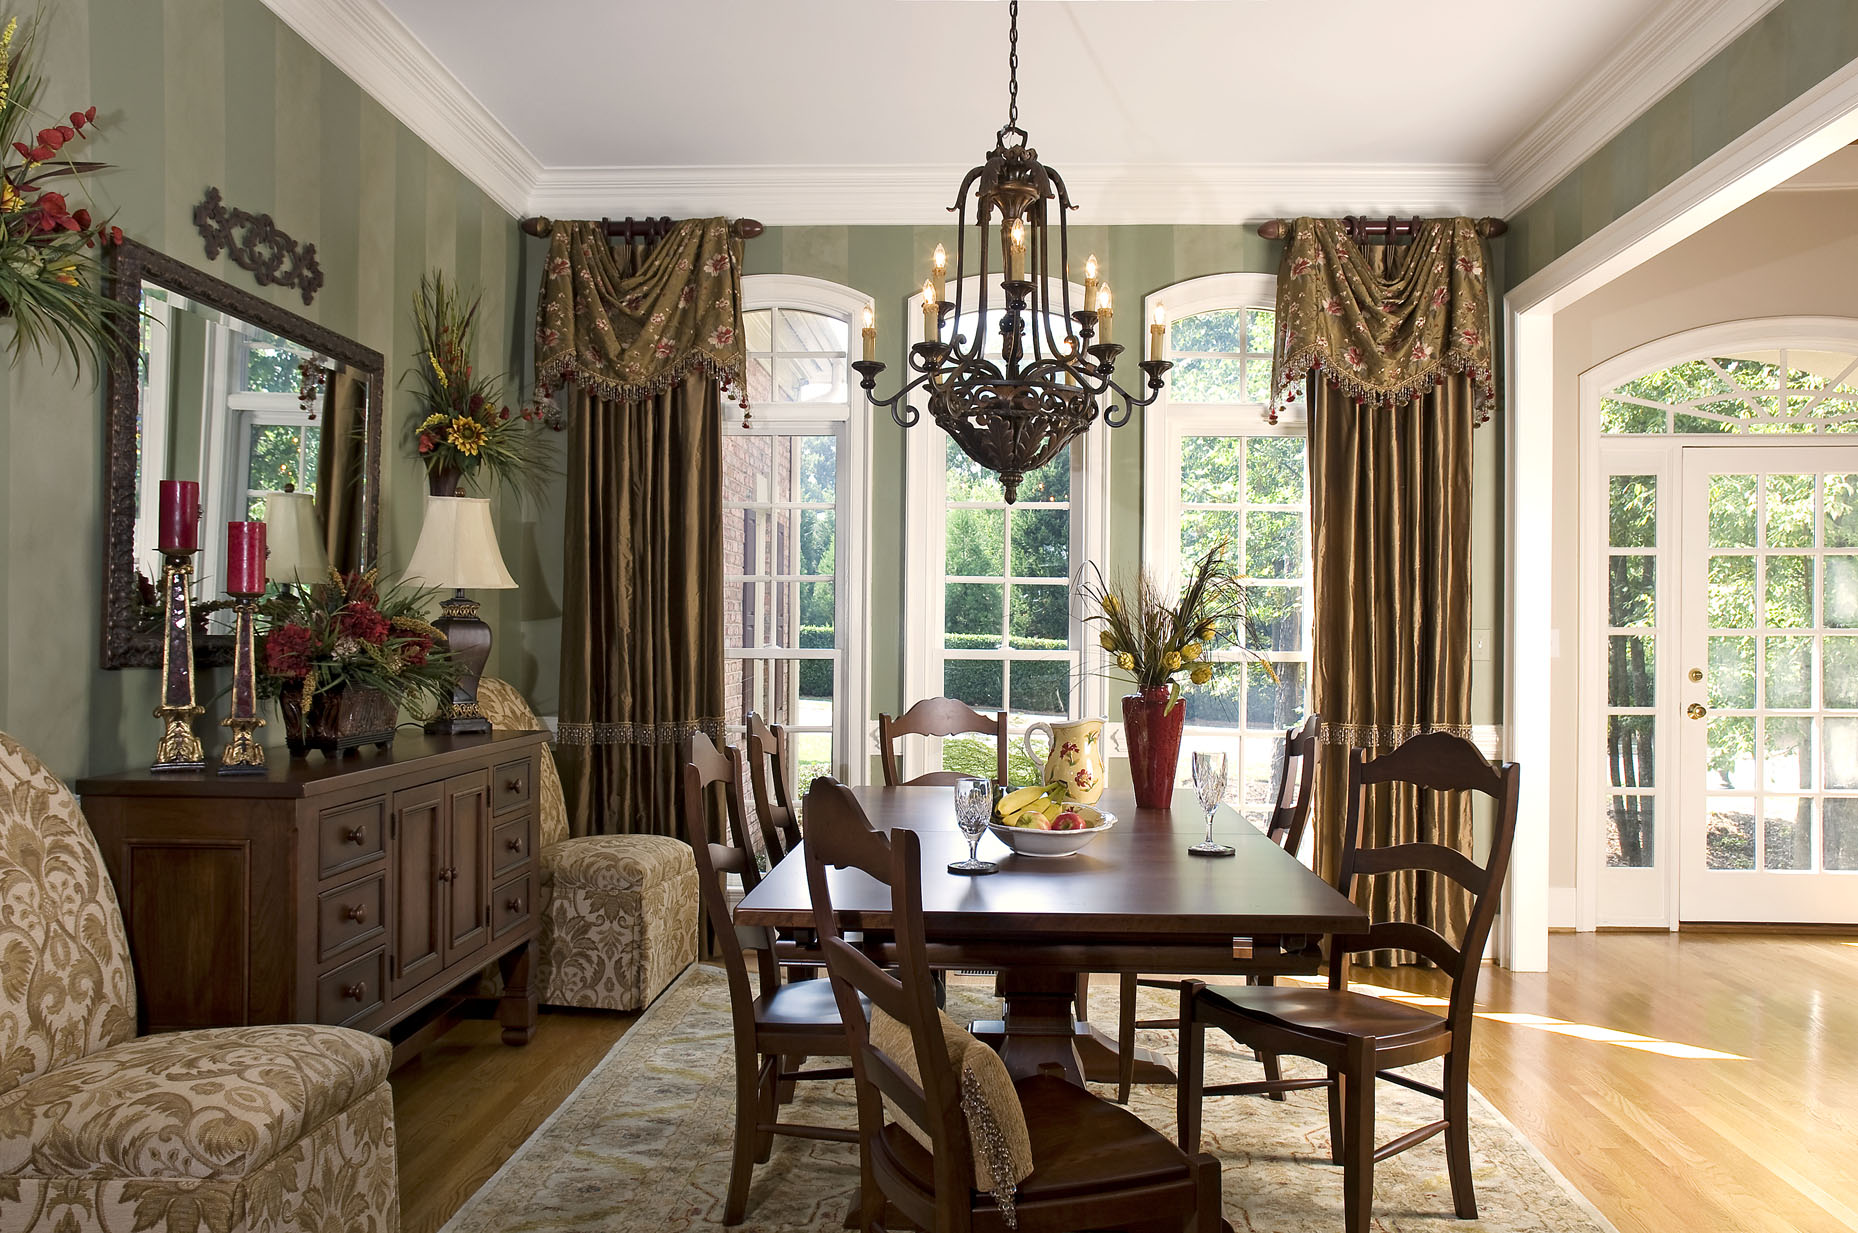 Decorating Den Interiors Blog  Interior Decorating and Design Tips  From Sue Pelley National